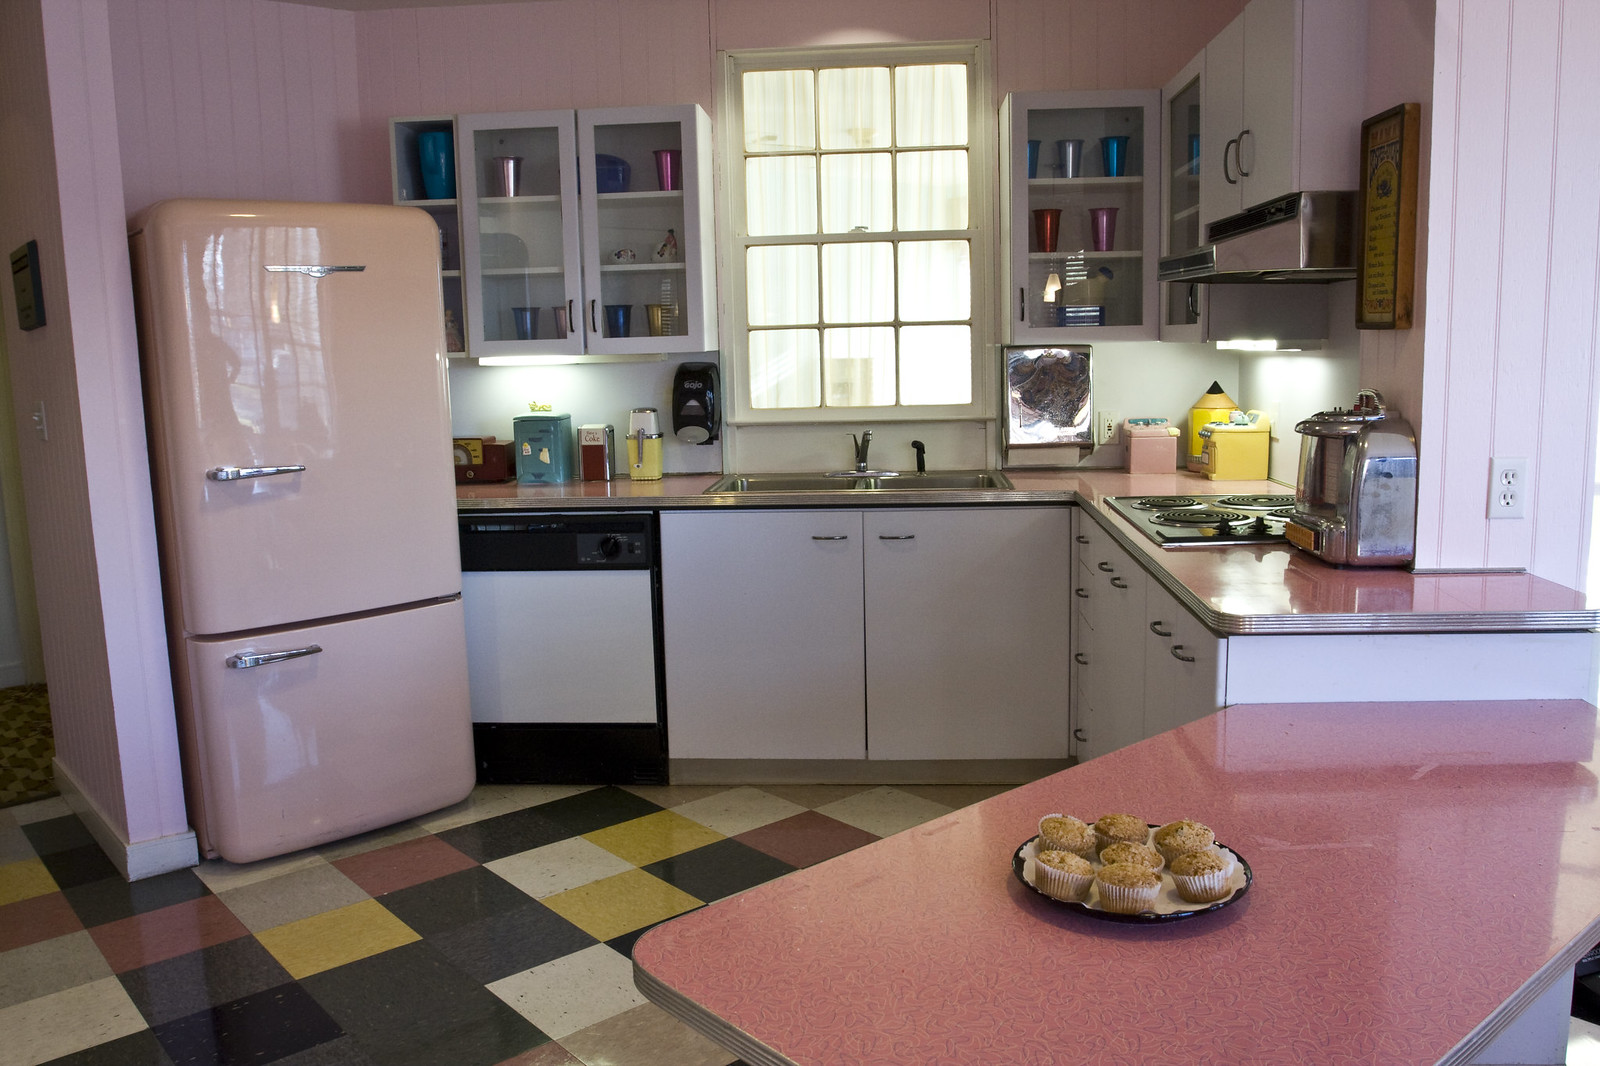 50's Style Kitchen by Chelsea Jewish Foundation | Dream home | Pinterest |  Kitchens and House